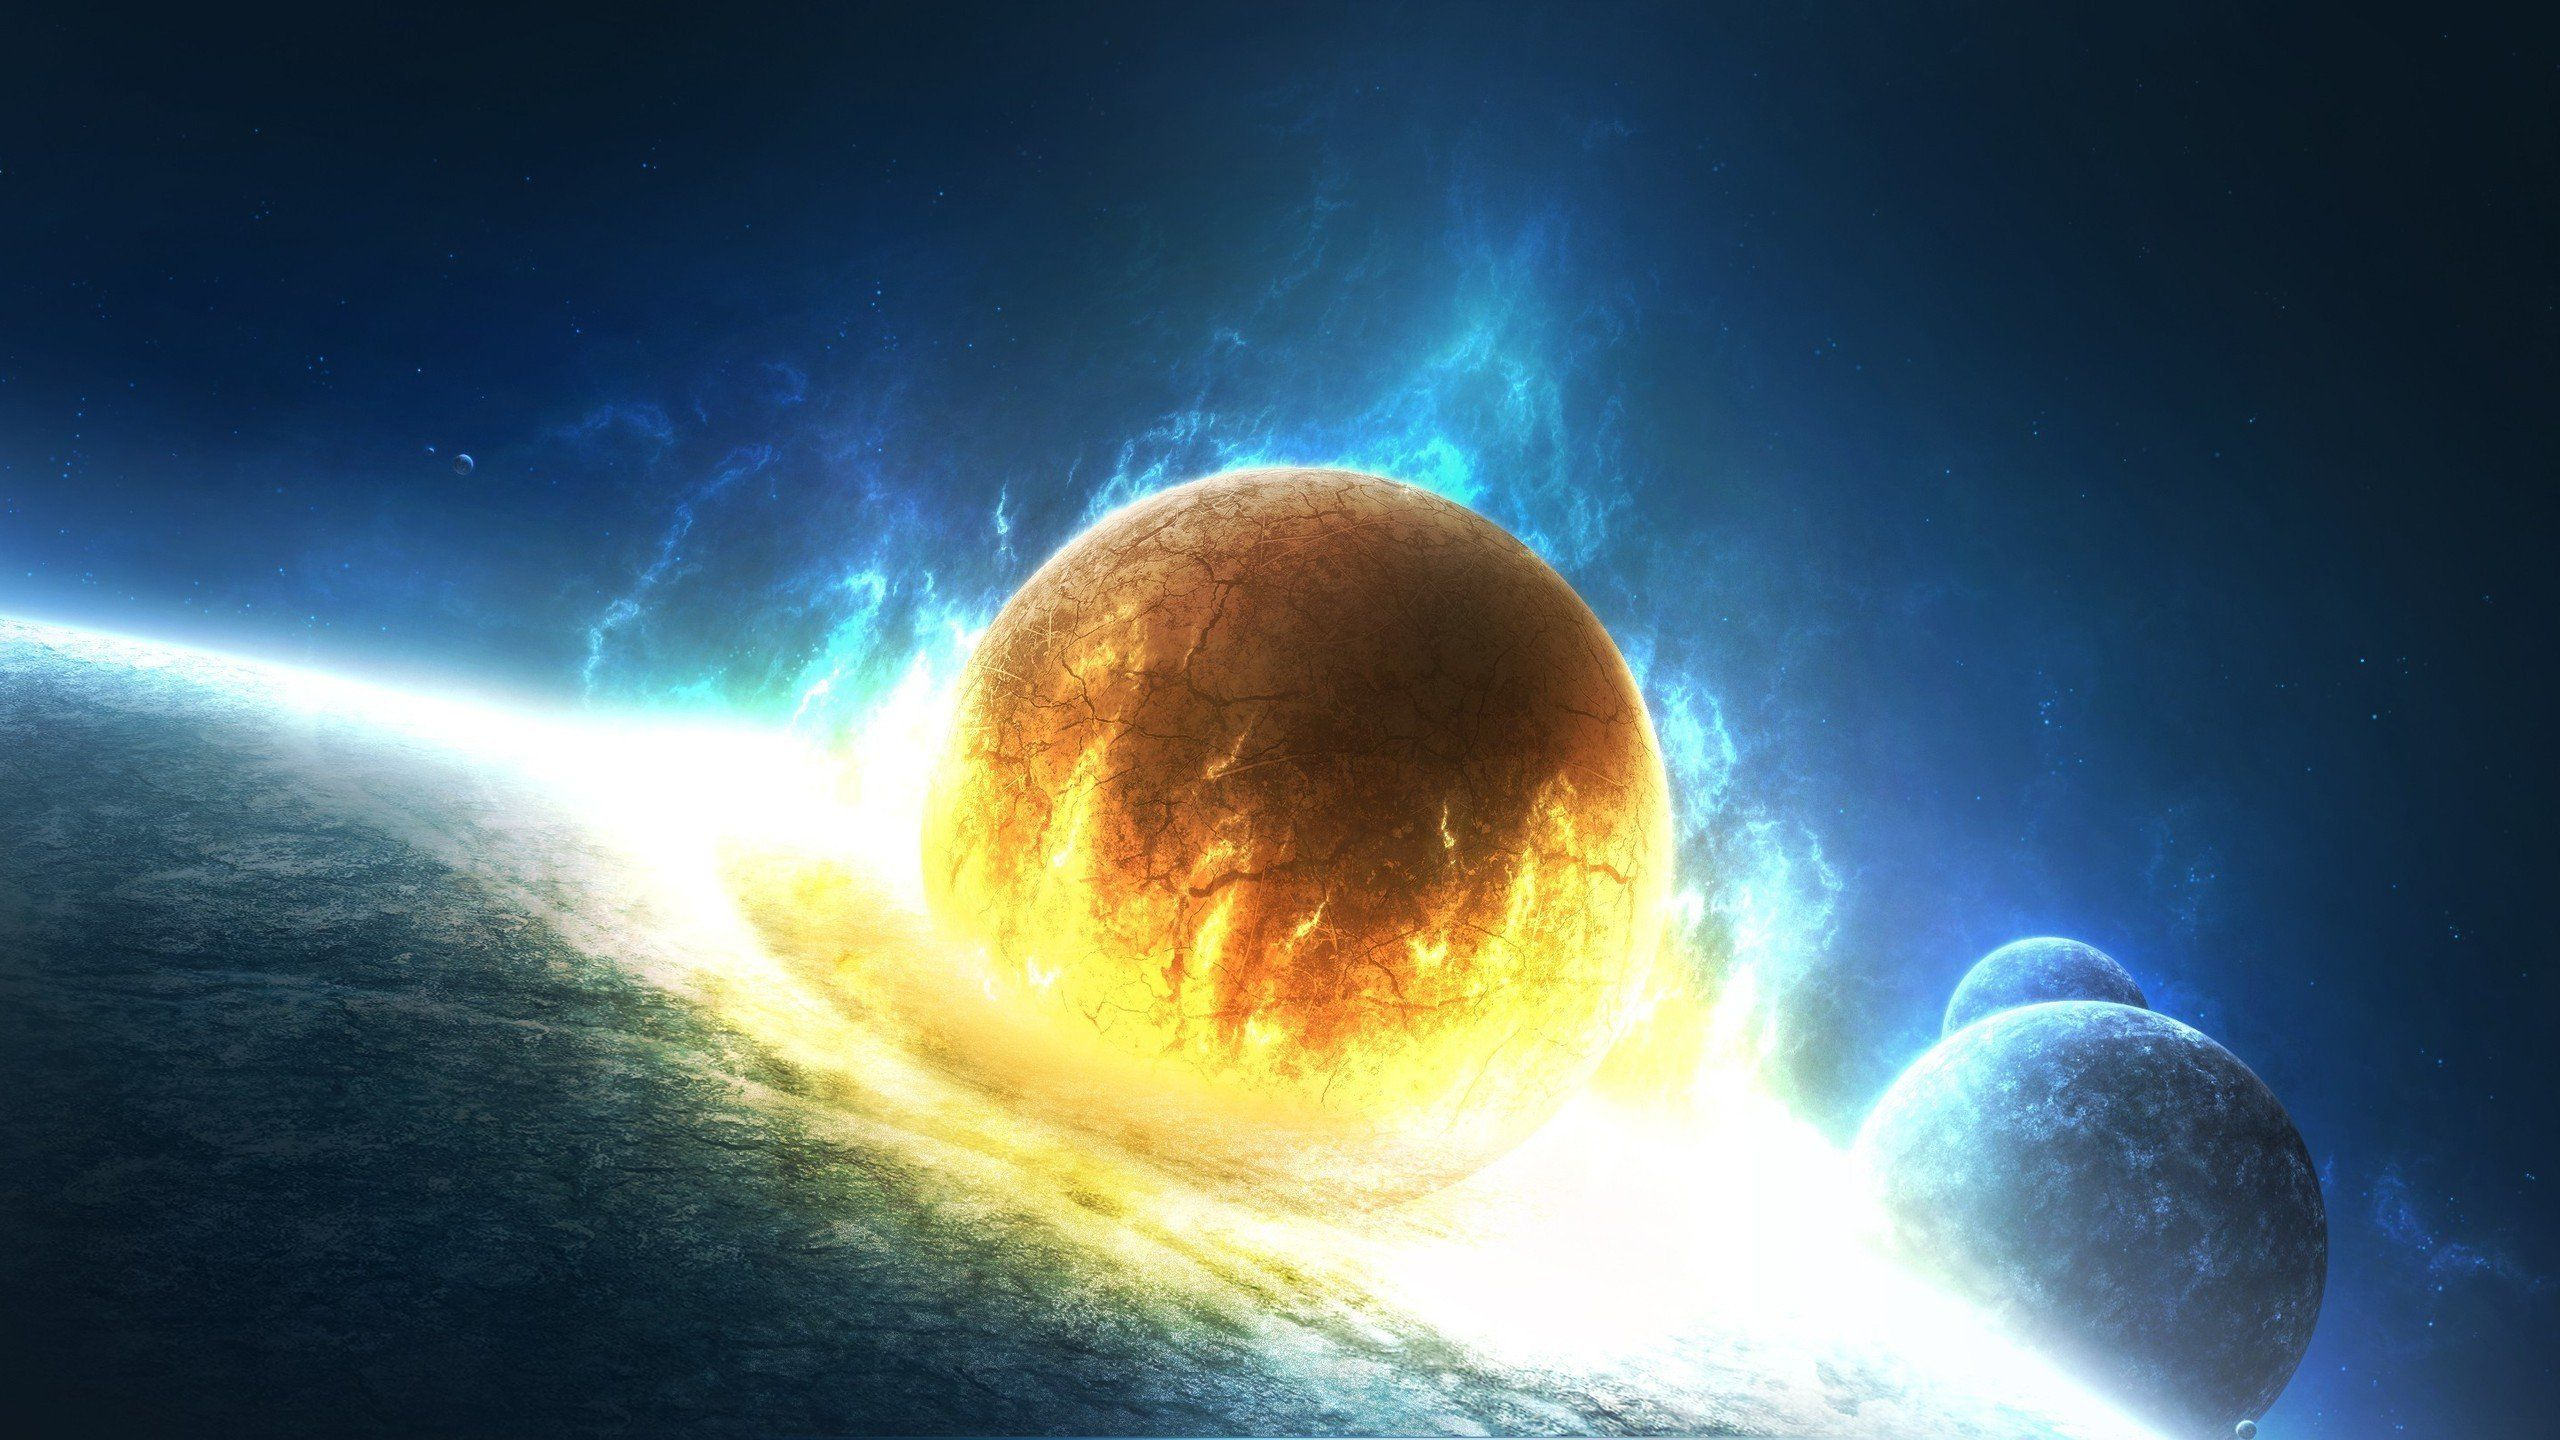 Outer Space Stars Explosions Planets Fire Earth Artwork Collision Wallpaper 2560x1440 293421 Planets Wallpaper Background Hd Wallpaper Fantasy Background